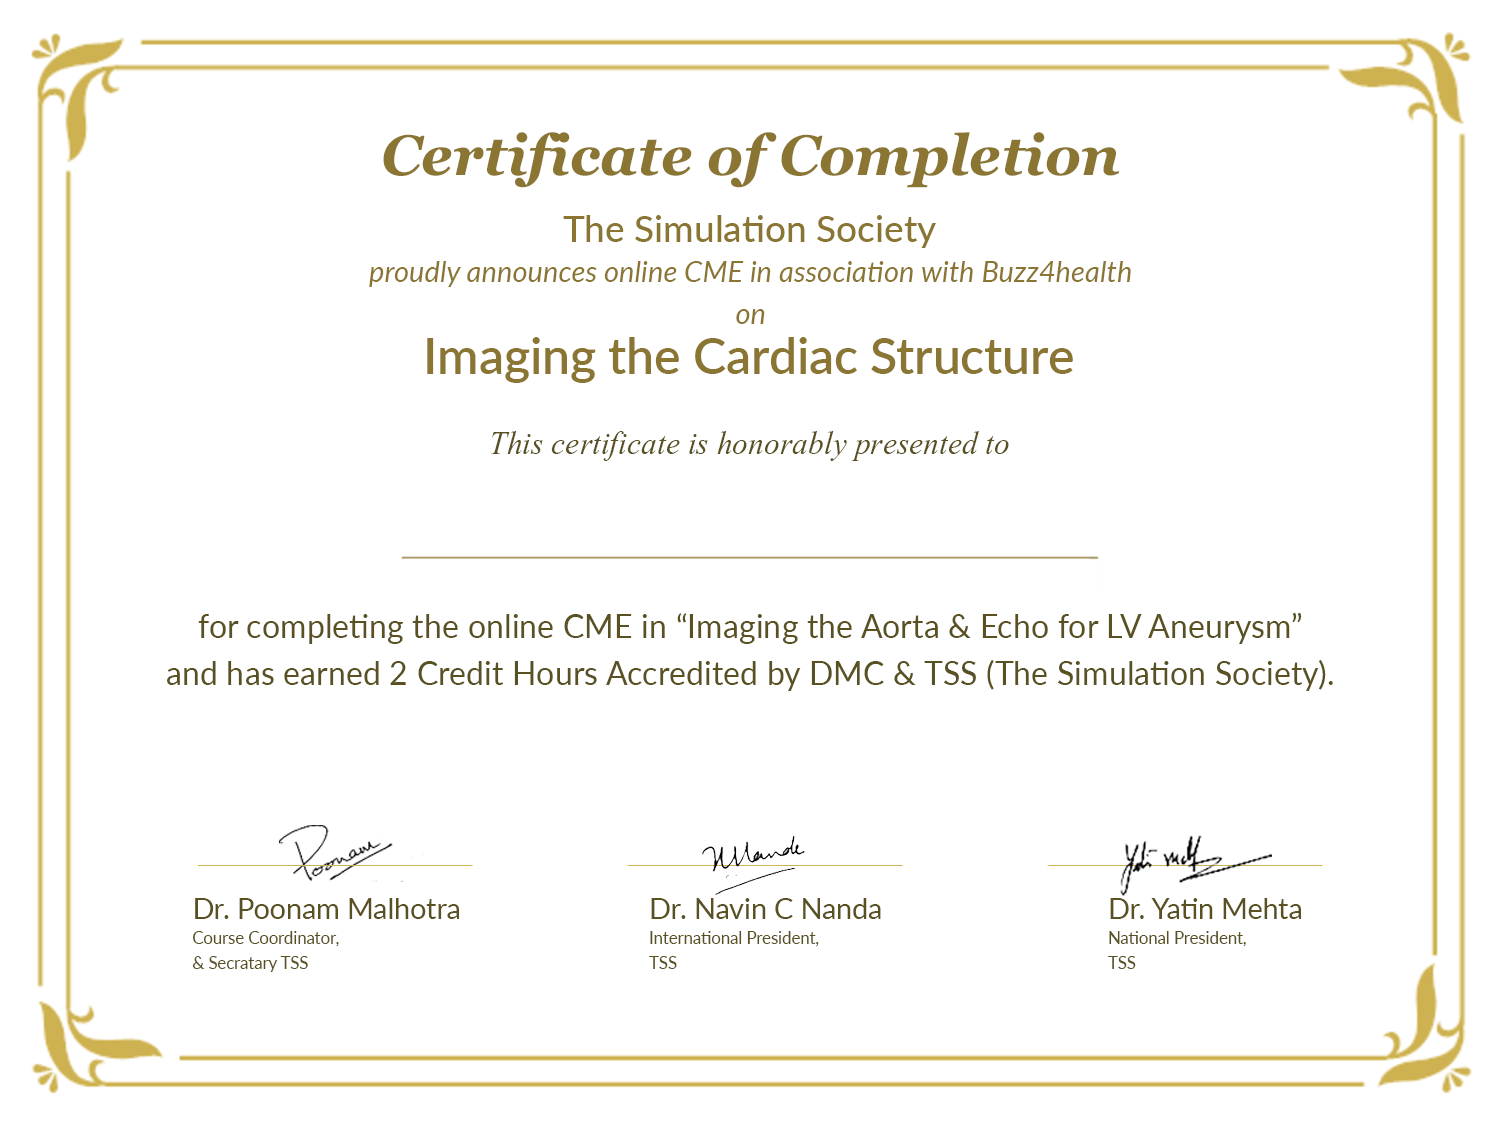 Imaging the Cardiac Structure